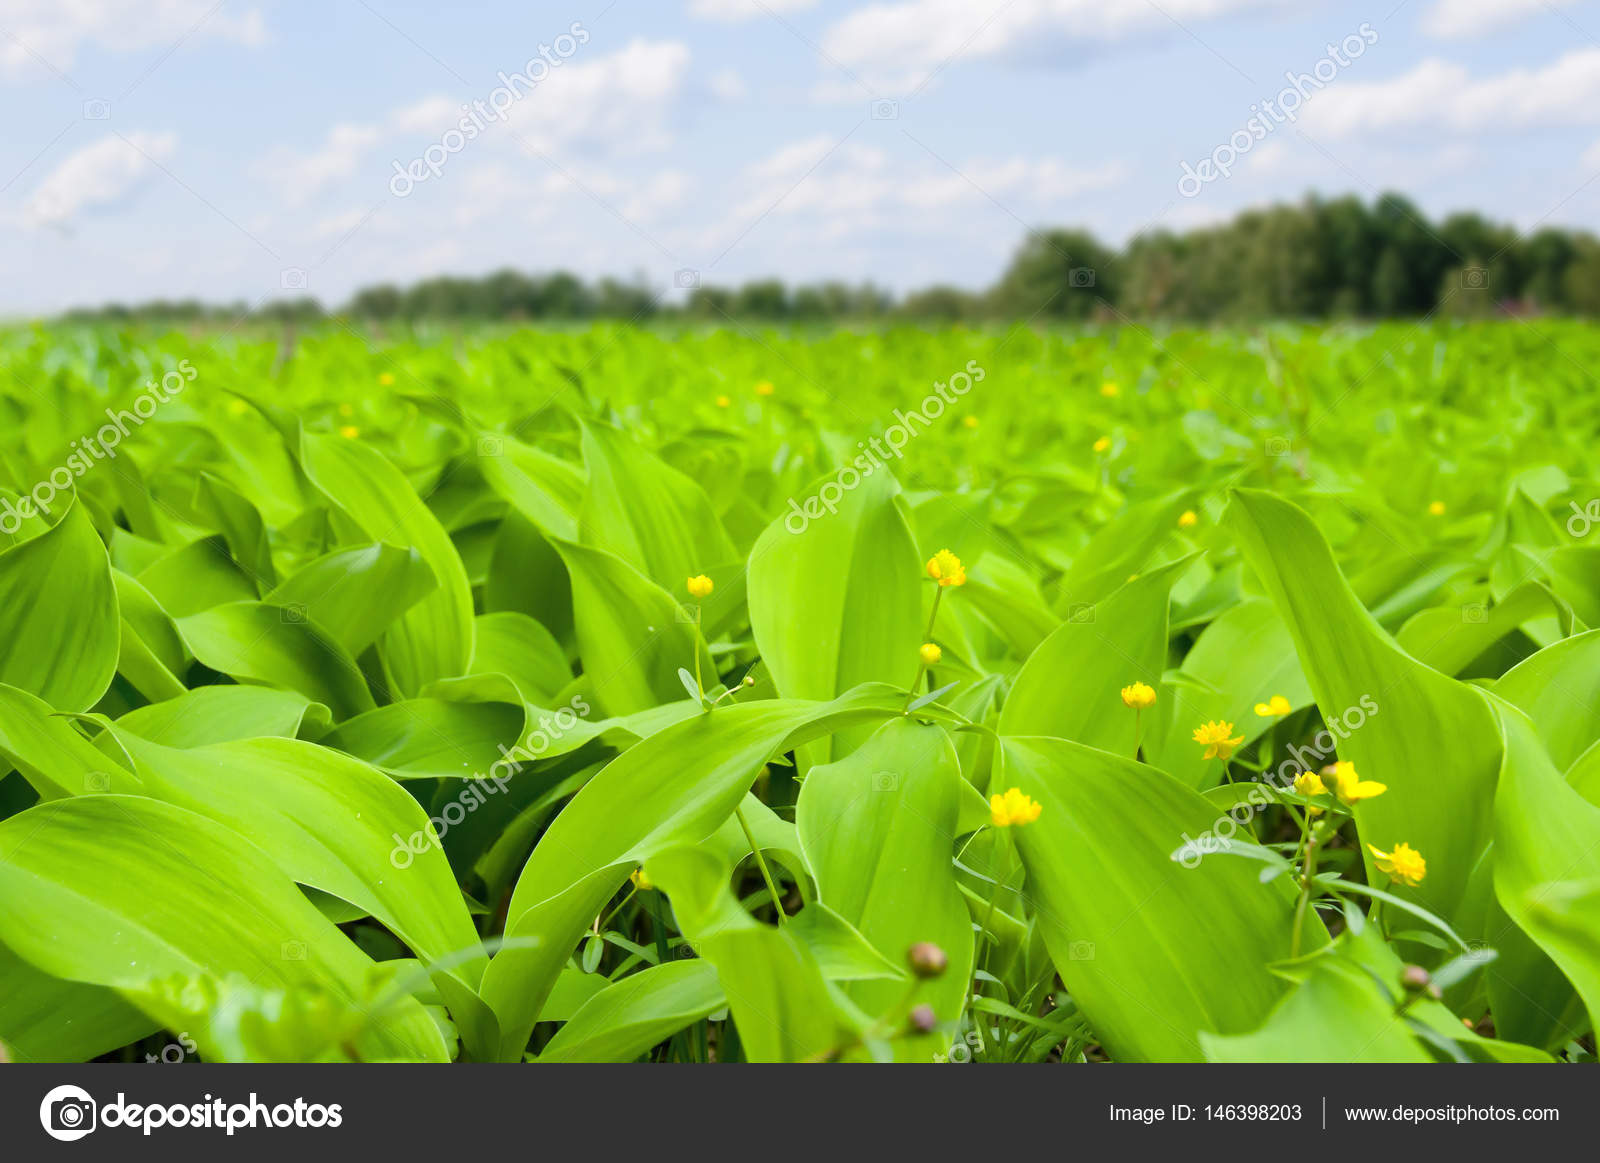 Field Of Herbs With Big Leaves And Little Yellow Flowers Stock